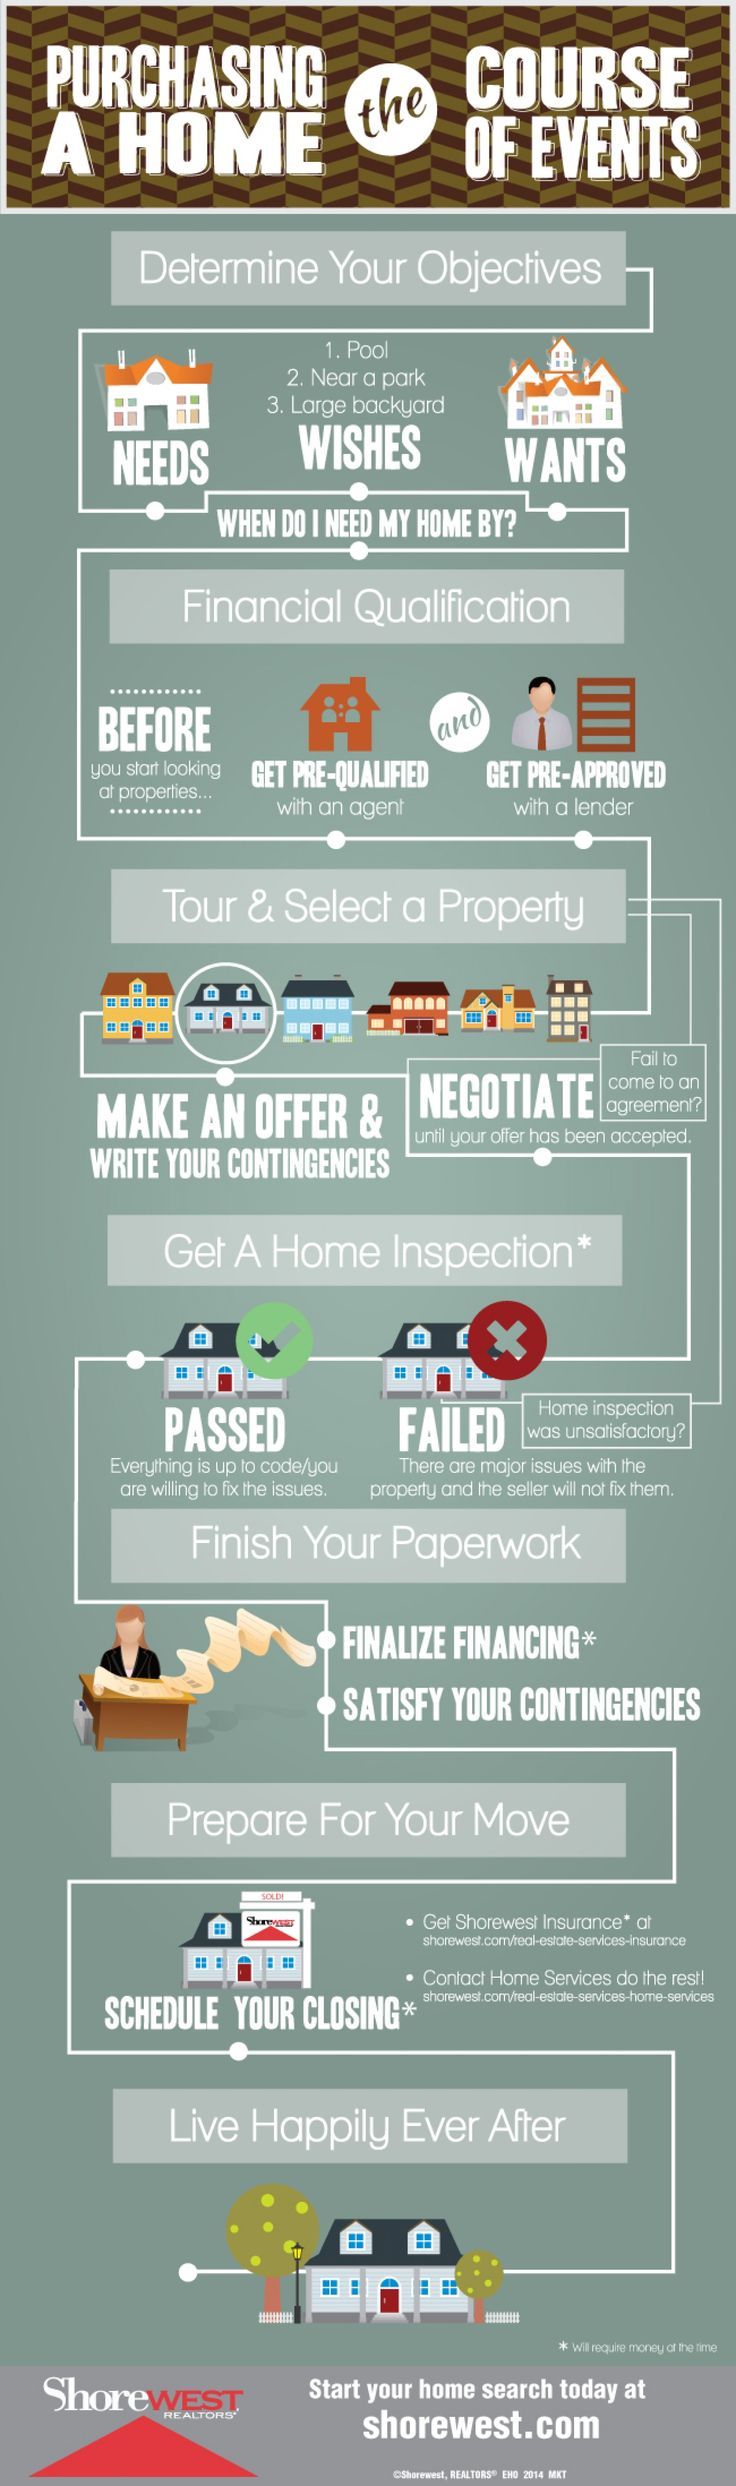 The Home Buying Process Can Be Long And Complex Use This Infographic To Understand Course Of Events A Work With Shorewest